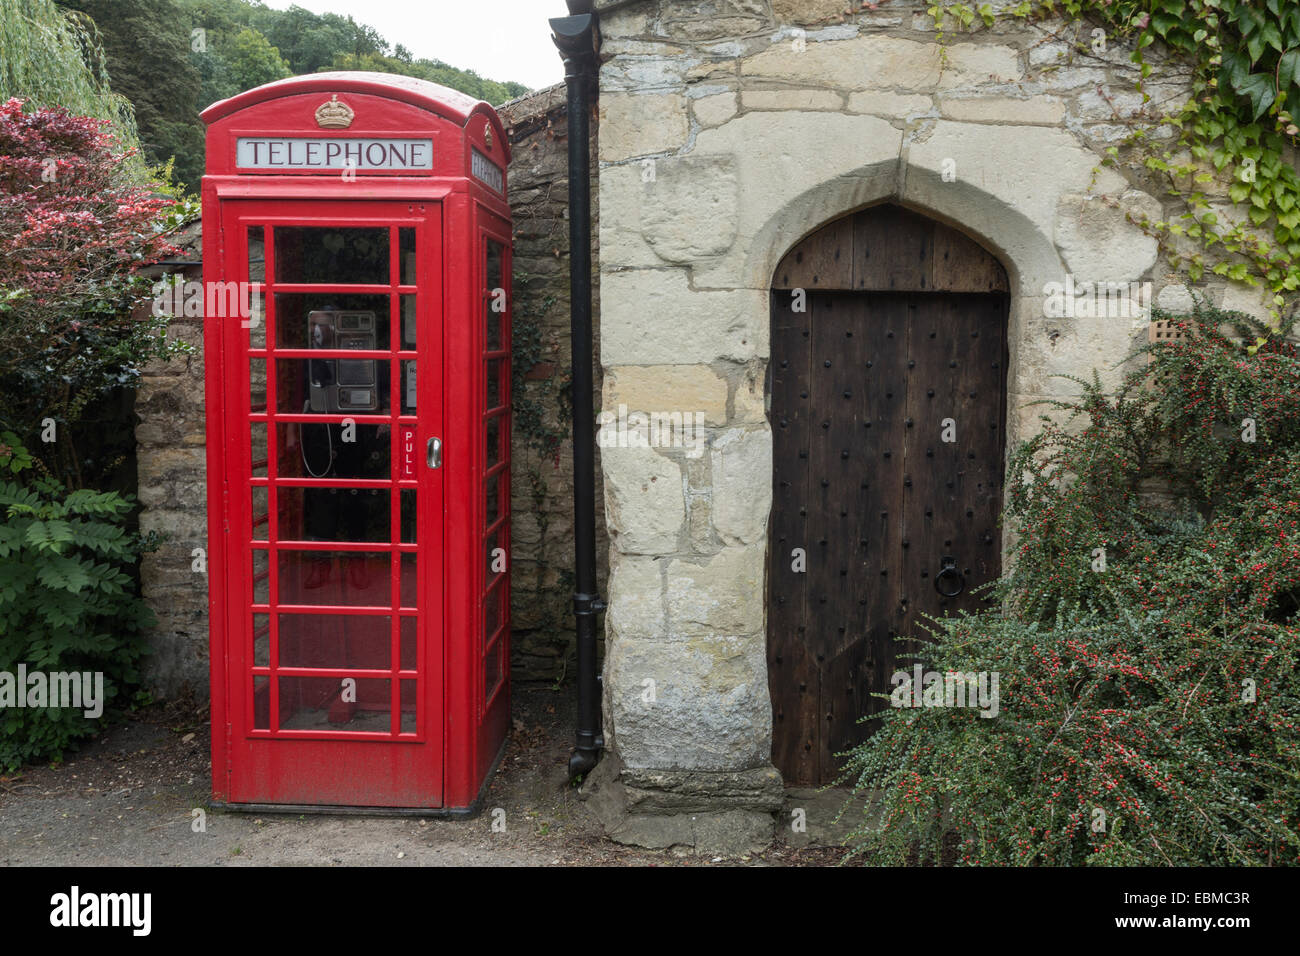 Red telephone box next to an old studded wooden door in a cotswold stone building, Castle Combe, Wiltshire, England - Stock Image